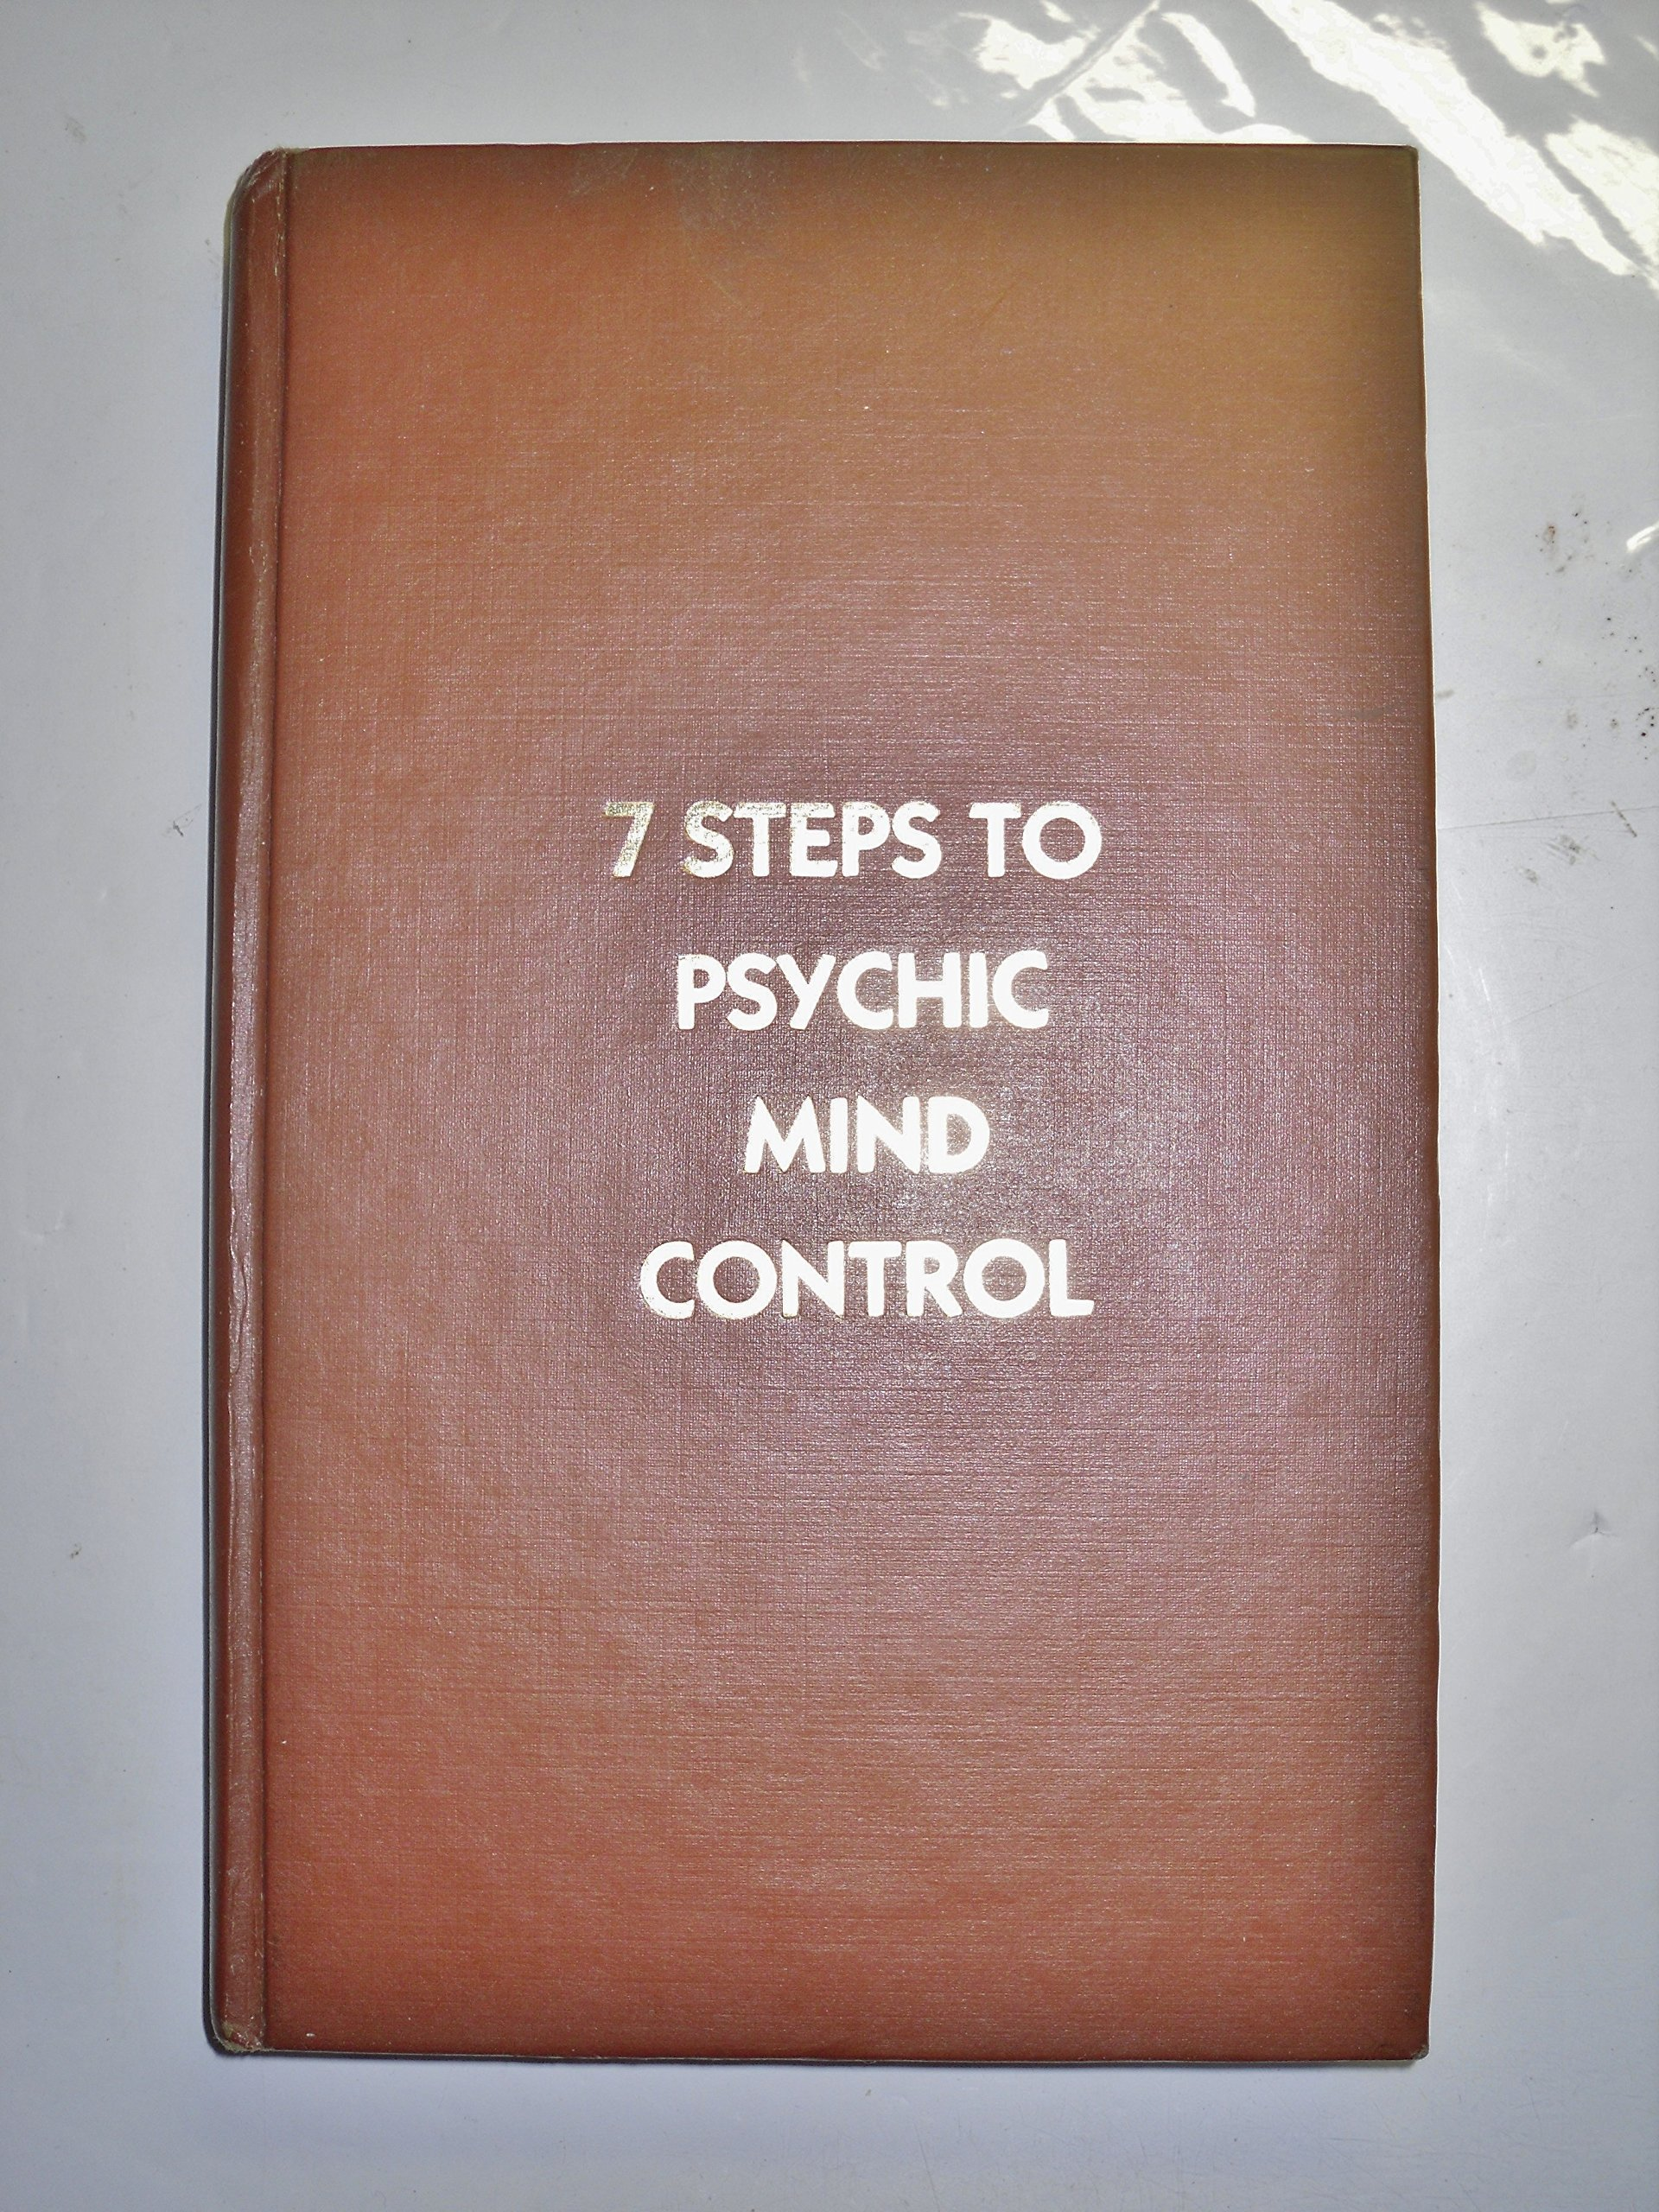 Download  7 STEPS TO PSYCHIC MIND CONTROL